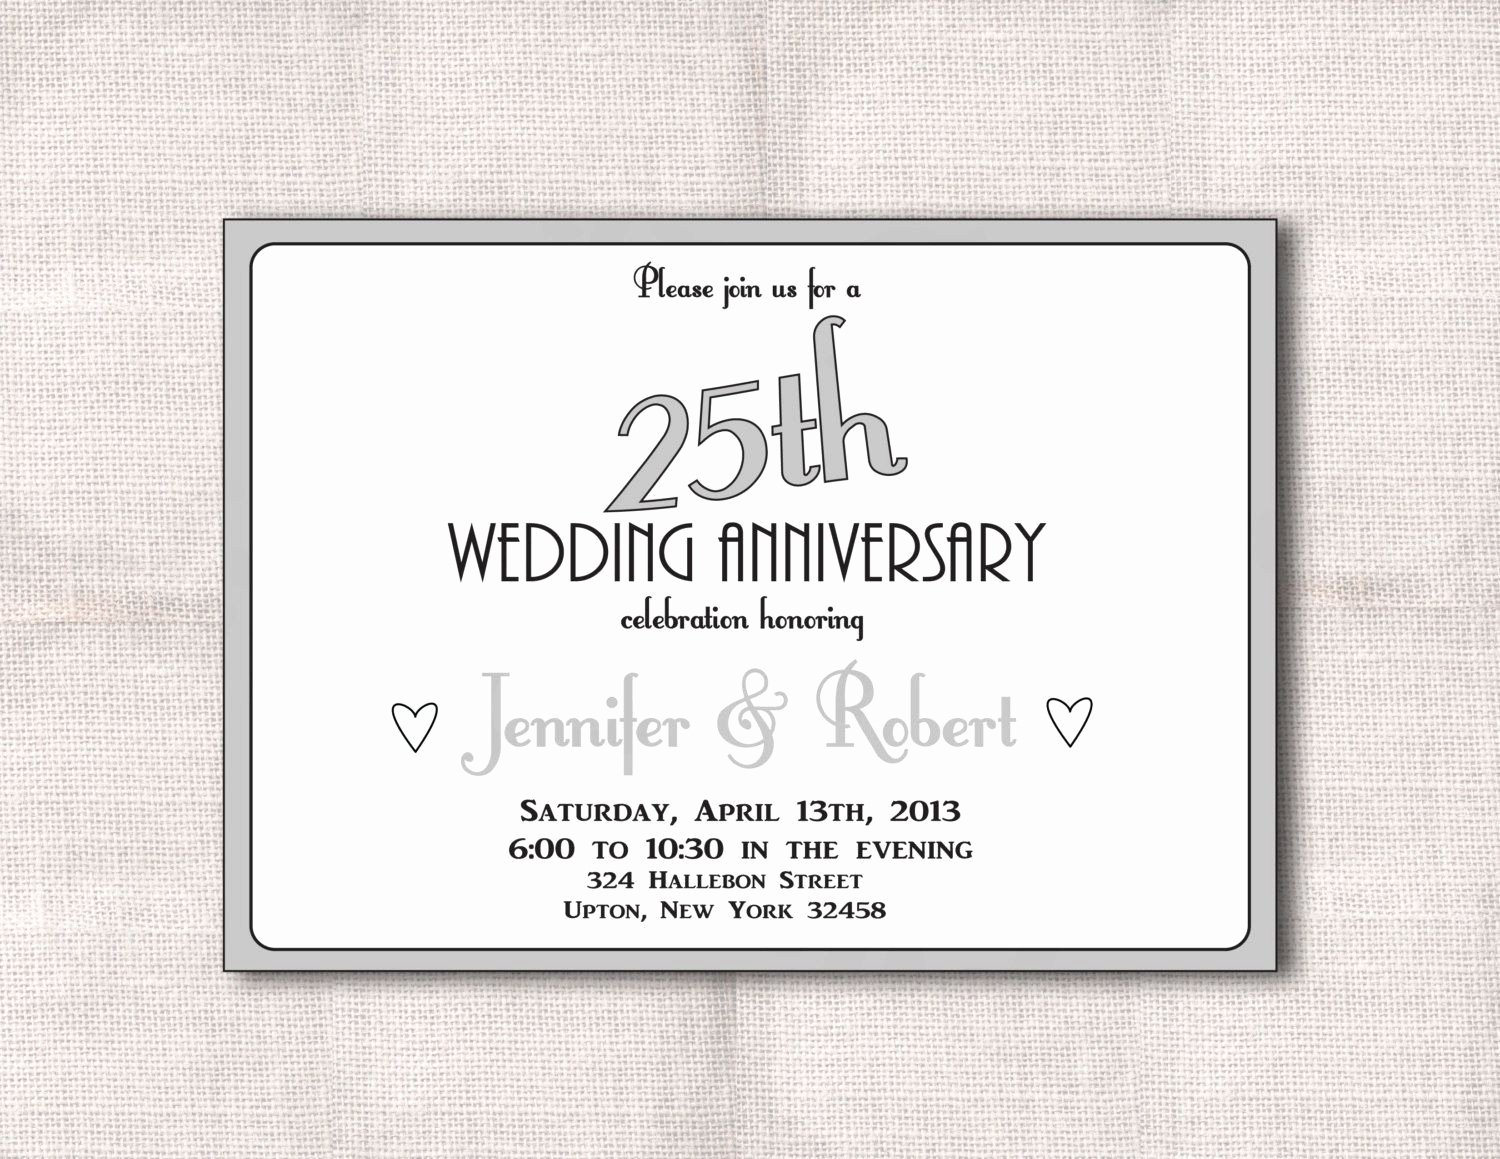 Wedding Anniversary Invitation Template New Surprise 25th Wedding Anniversary Invitation Templates Wedding Invitations